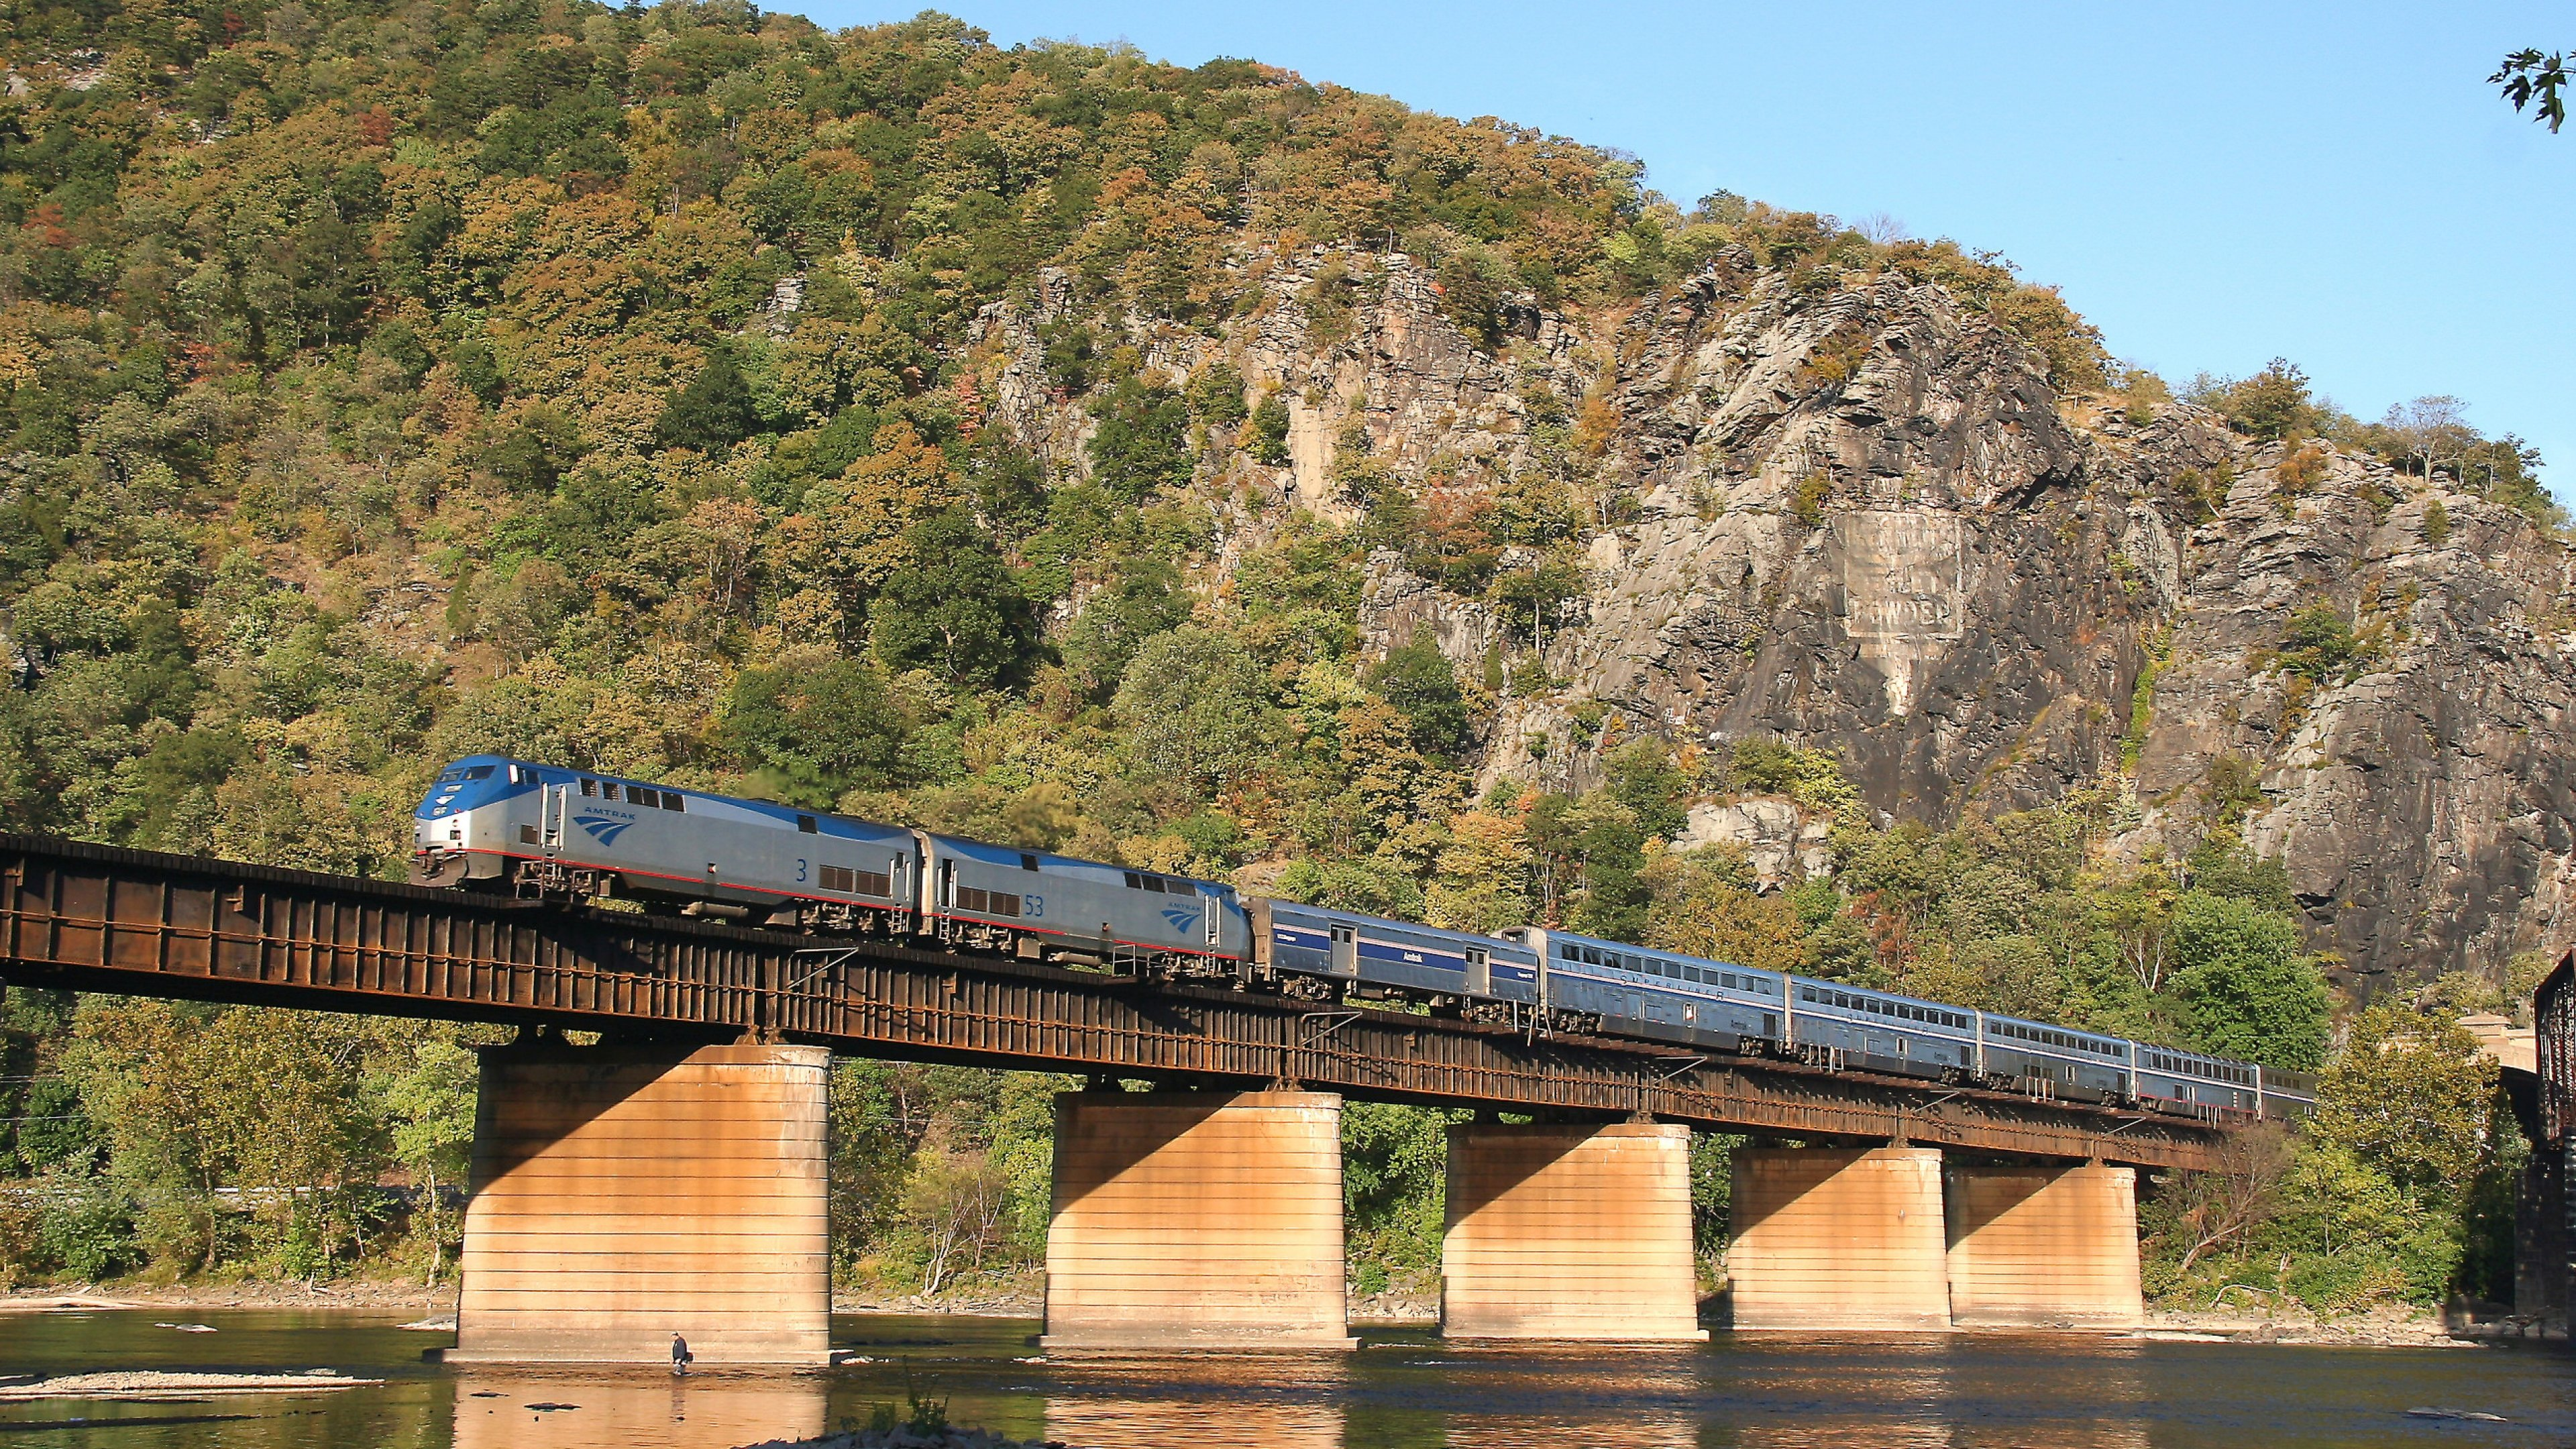 Train on a bridge over the Potomac River at Harpers Ferry National Historic Park